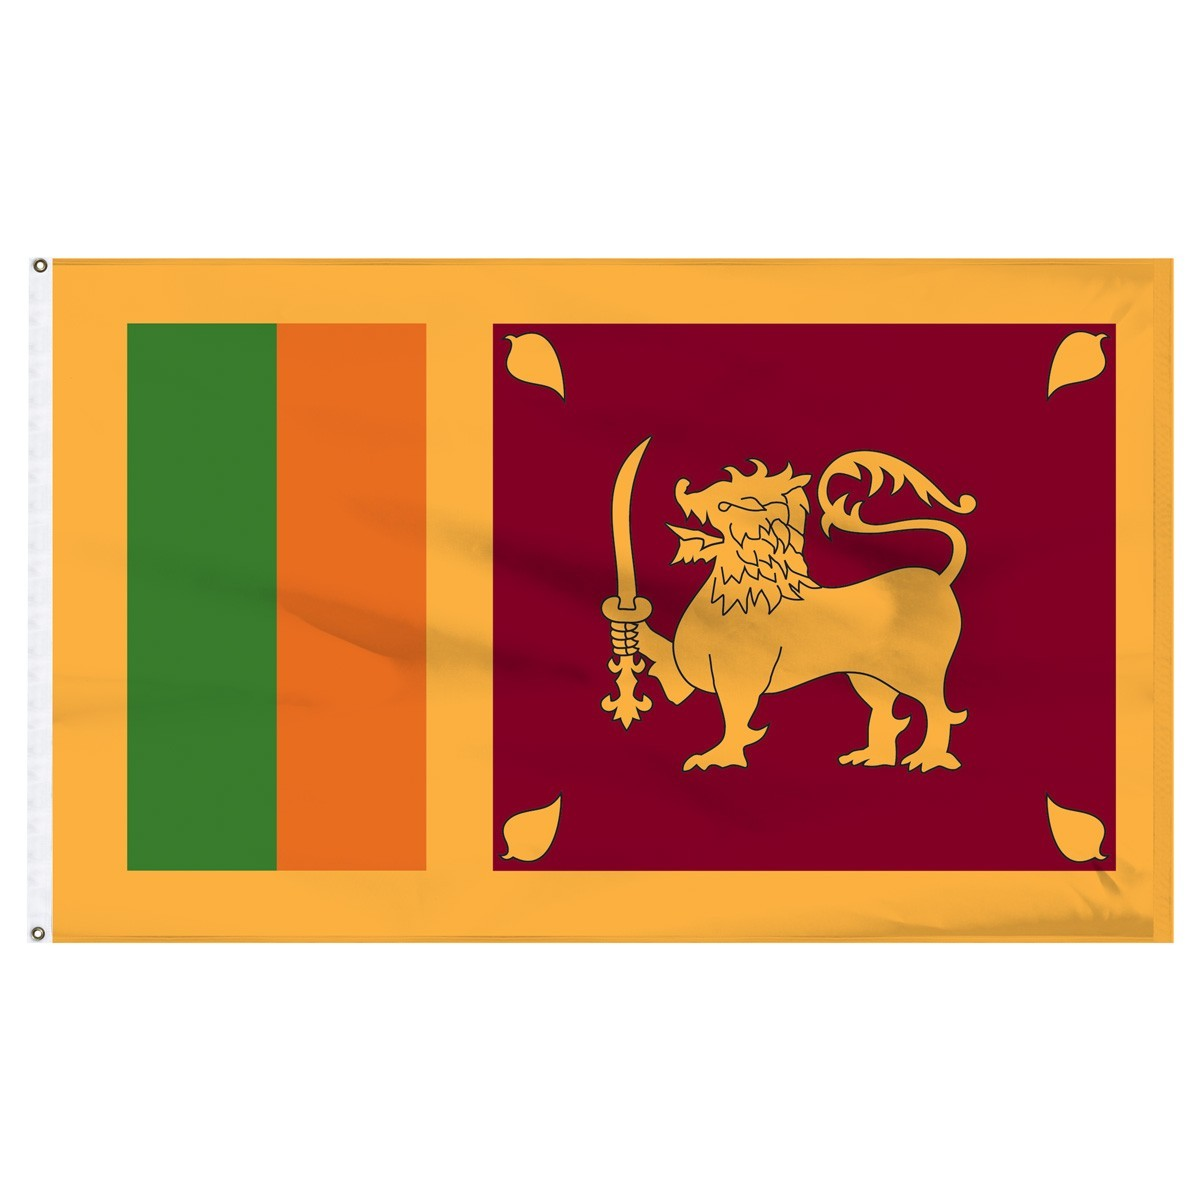 Sri Lanka 4' x 6' Outdoor Nylon Flag